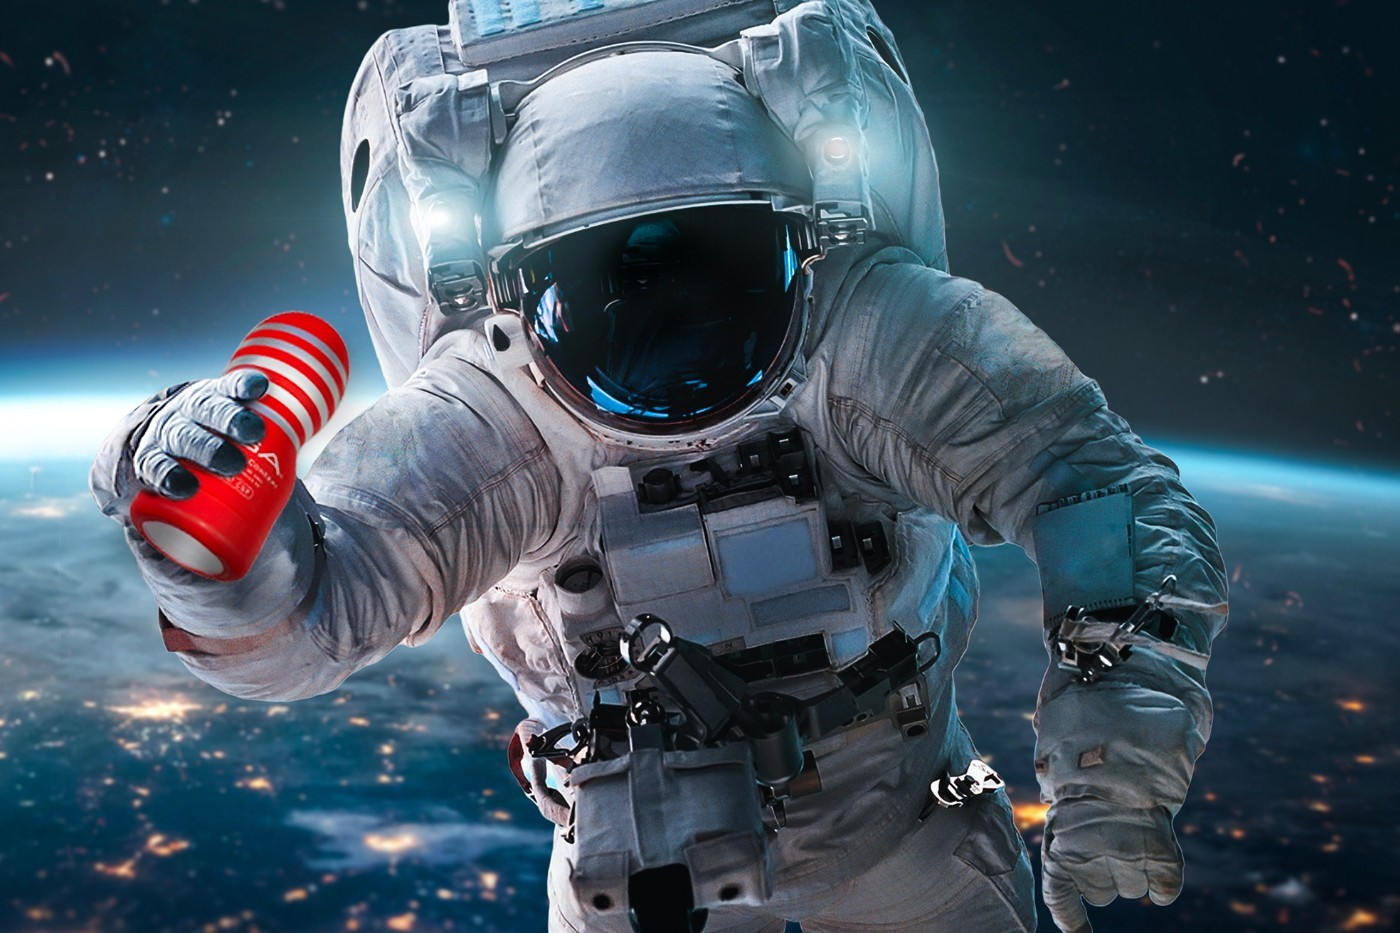 Space Is Becoming the New Frontier for Brand Marketing op-ed marketing advertising space tourism Elon Musk Blue Origin Jeff Bezos N.A.S.A. spacex   Virgin Galactic